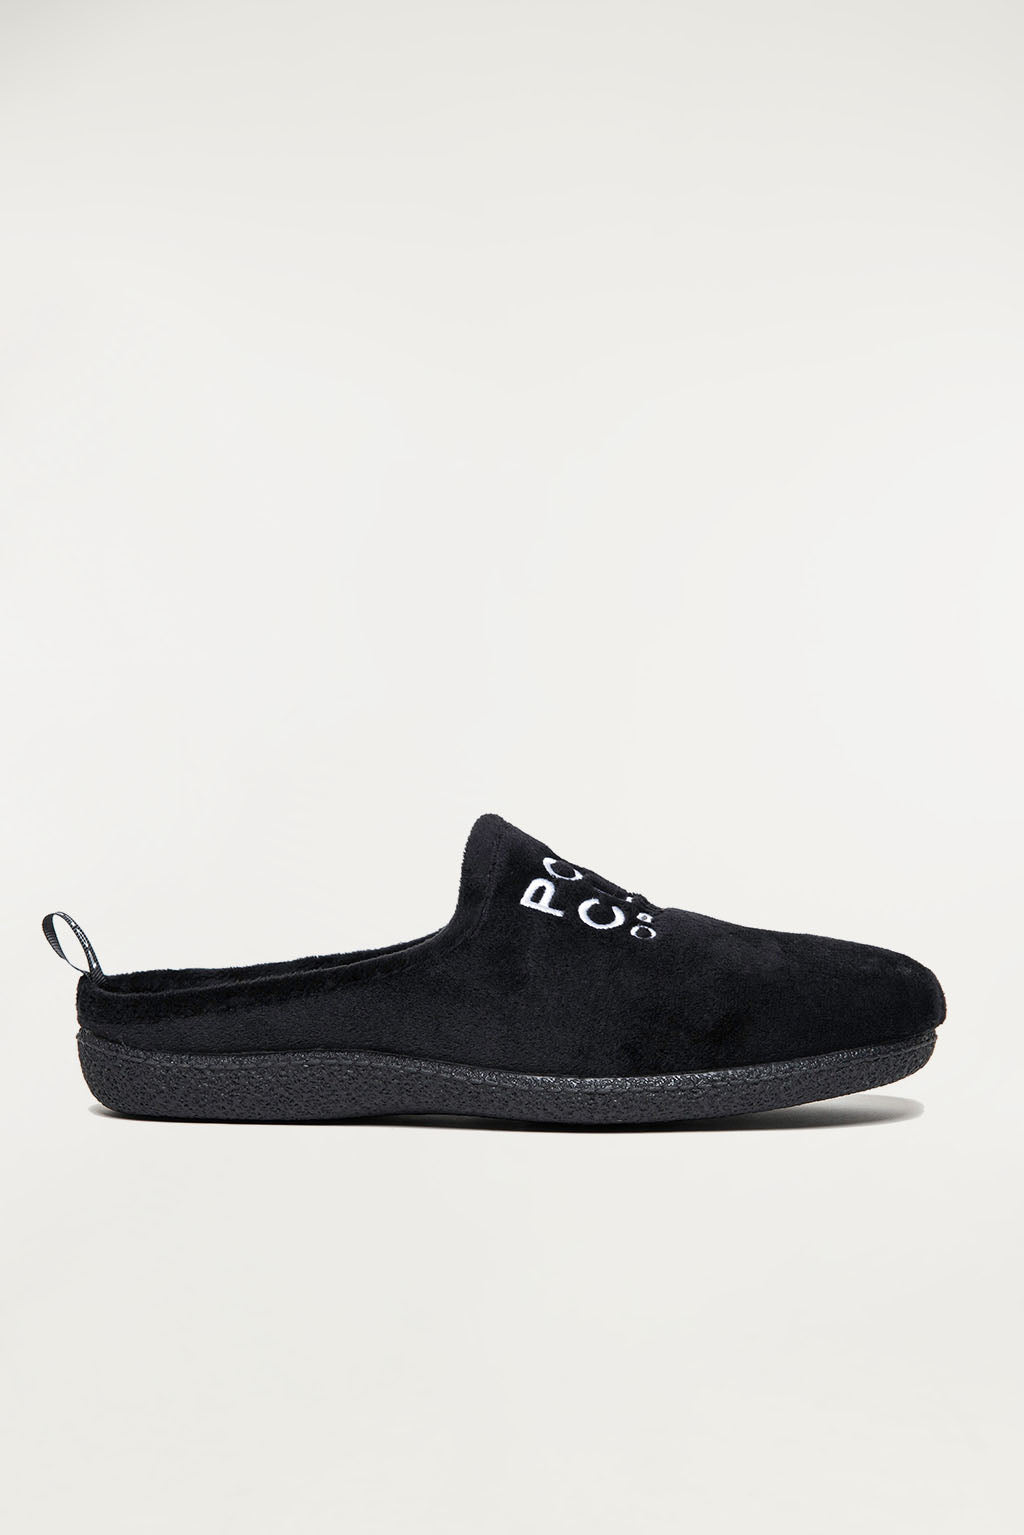 Black sleepers with medium-size embroidery